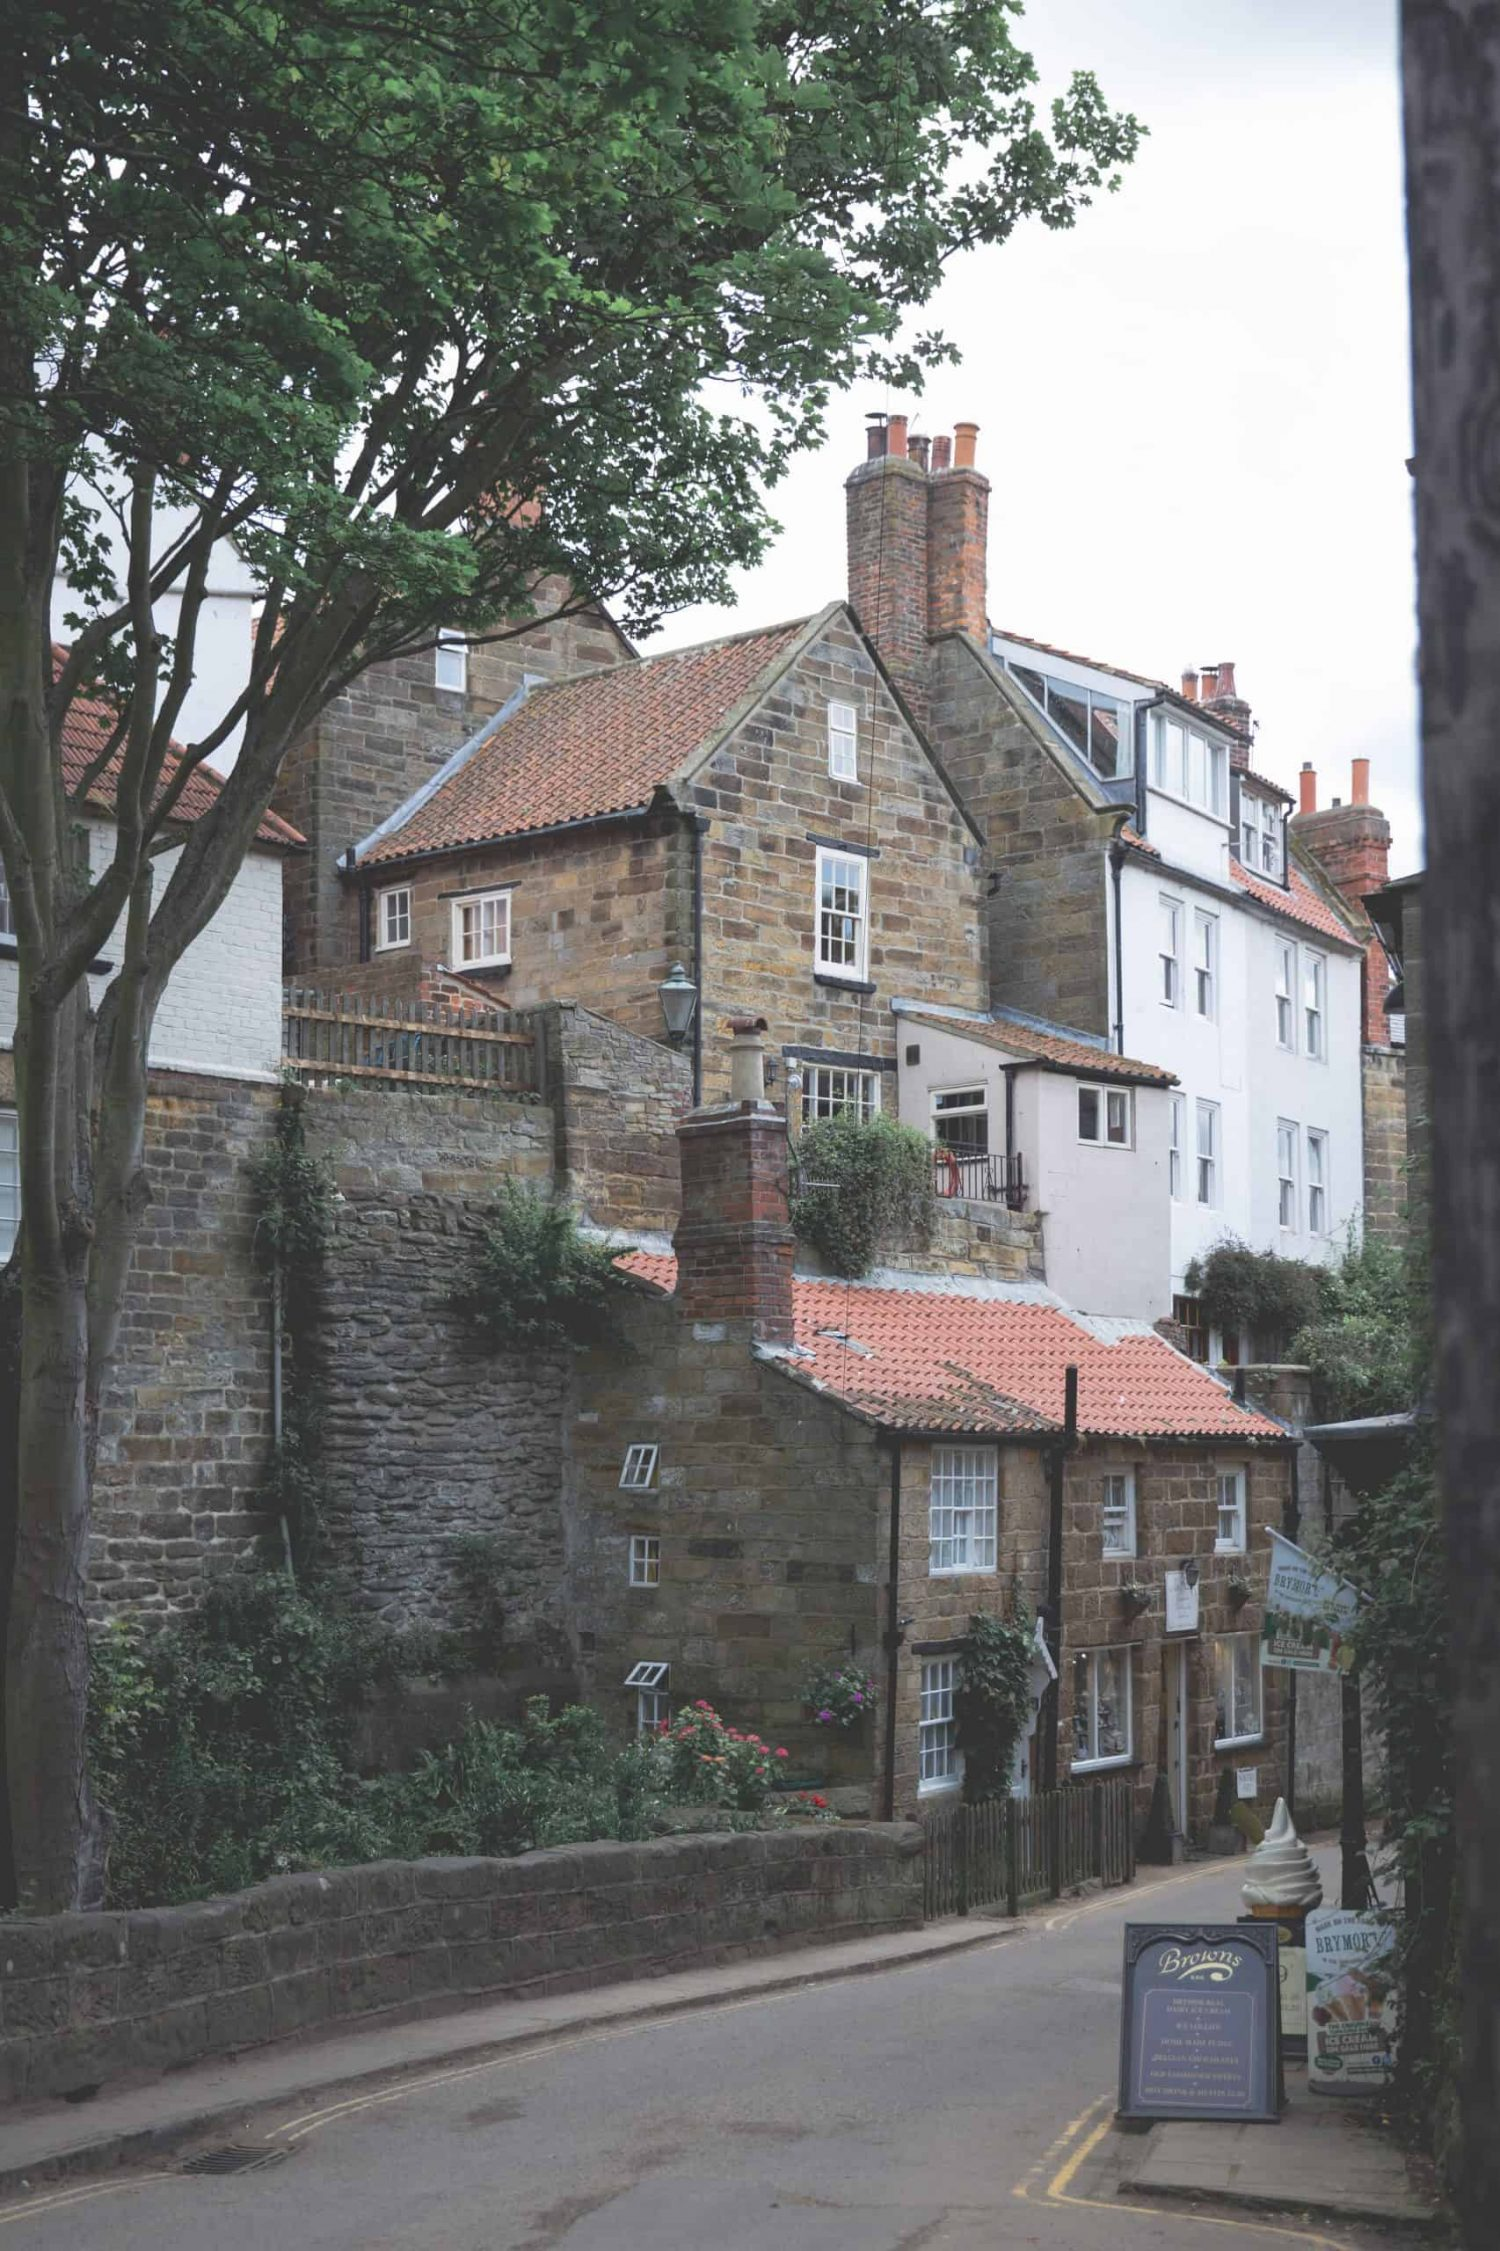 The main street going into Robin Hood's Bay, a great travel destination for 2020.